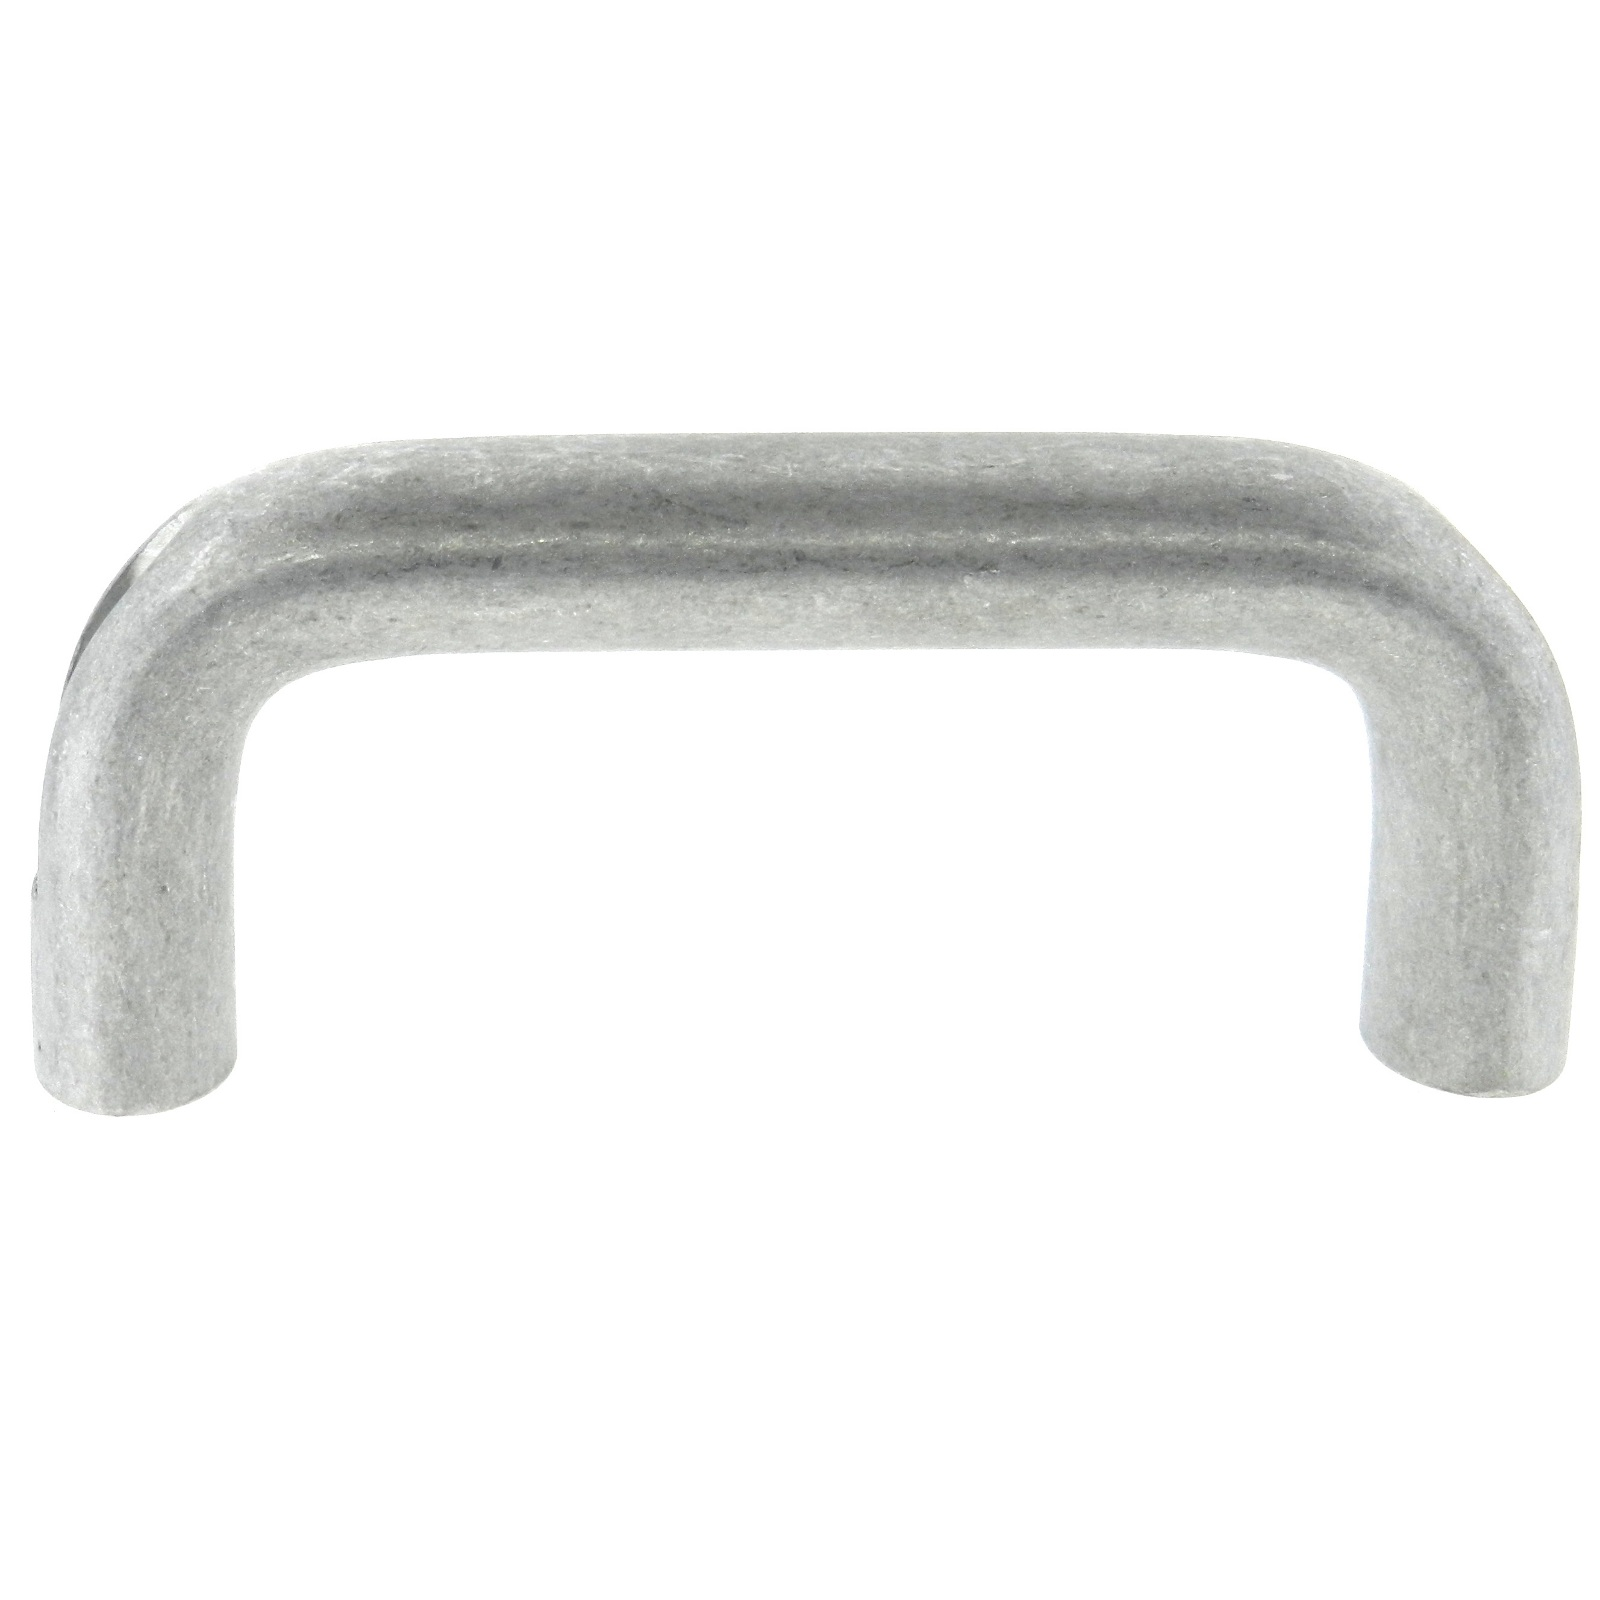 An aluminum top mount cabinet handle with a tumbled finish